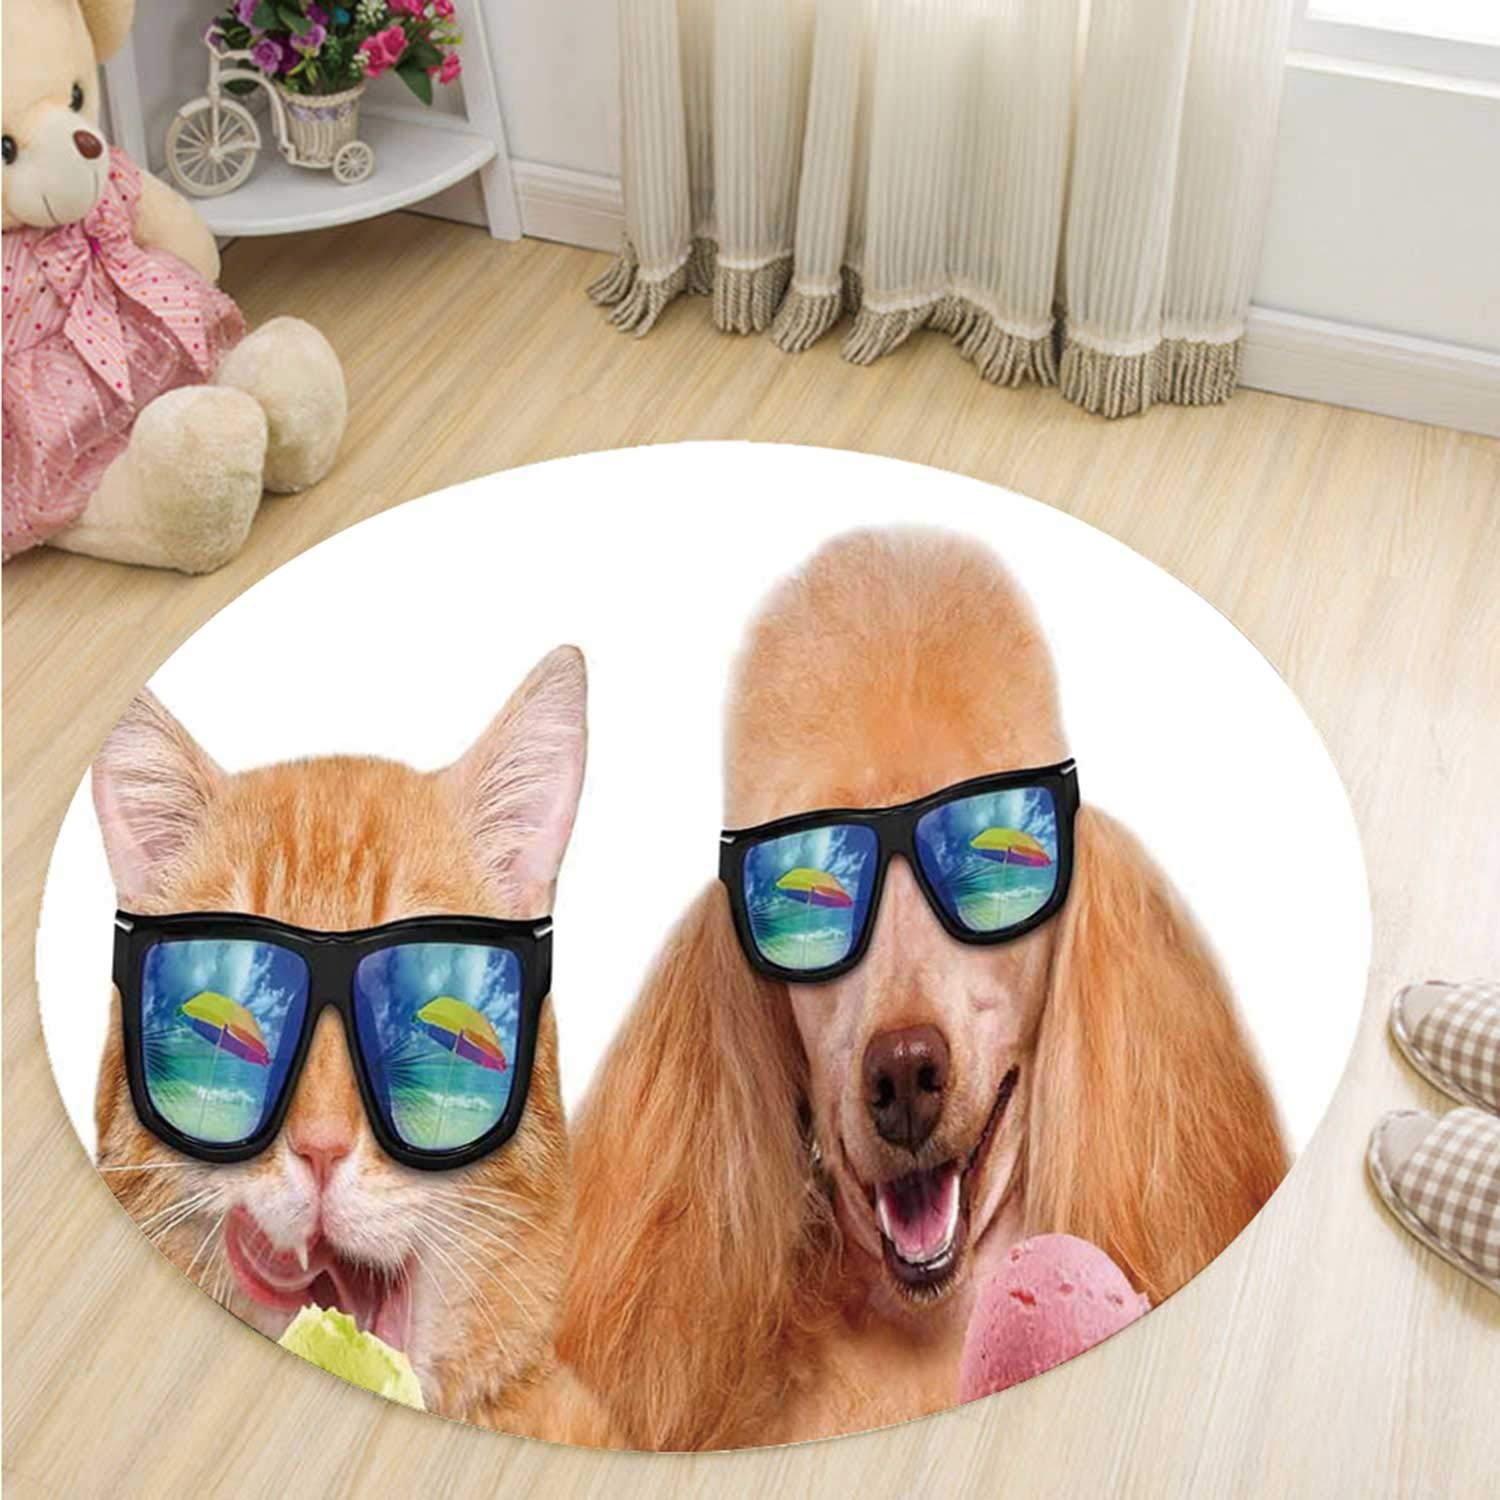 Animal Simple Round Mat,Cat Dog Pet with Sunglasses Eating Ice Cream Retro Cool Vintage Pop Artwork Image for Study,51''R by MOOCOM